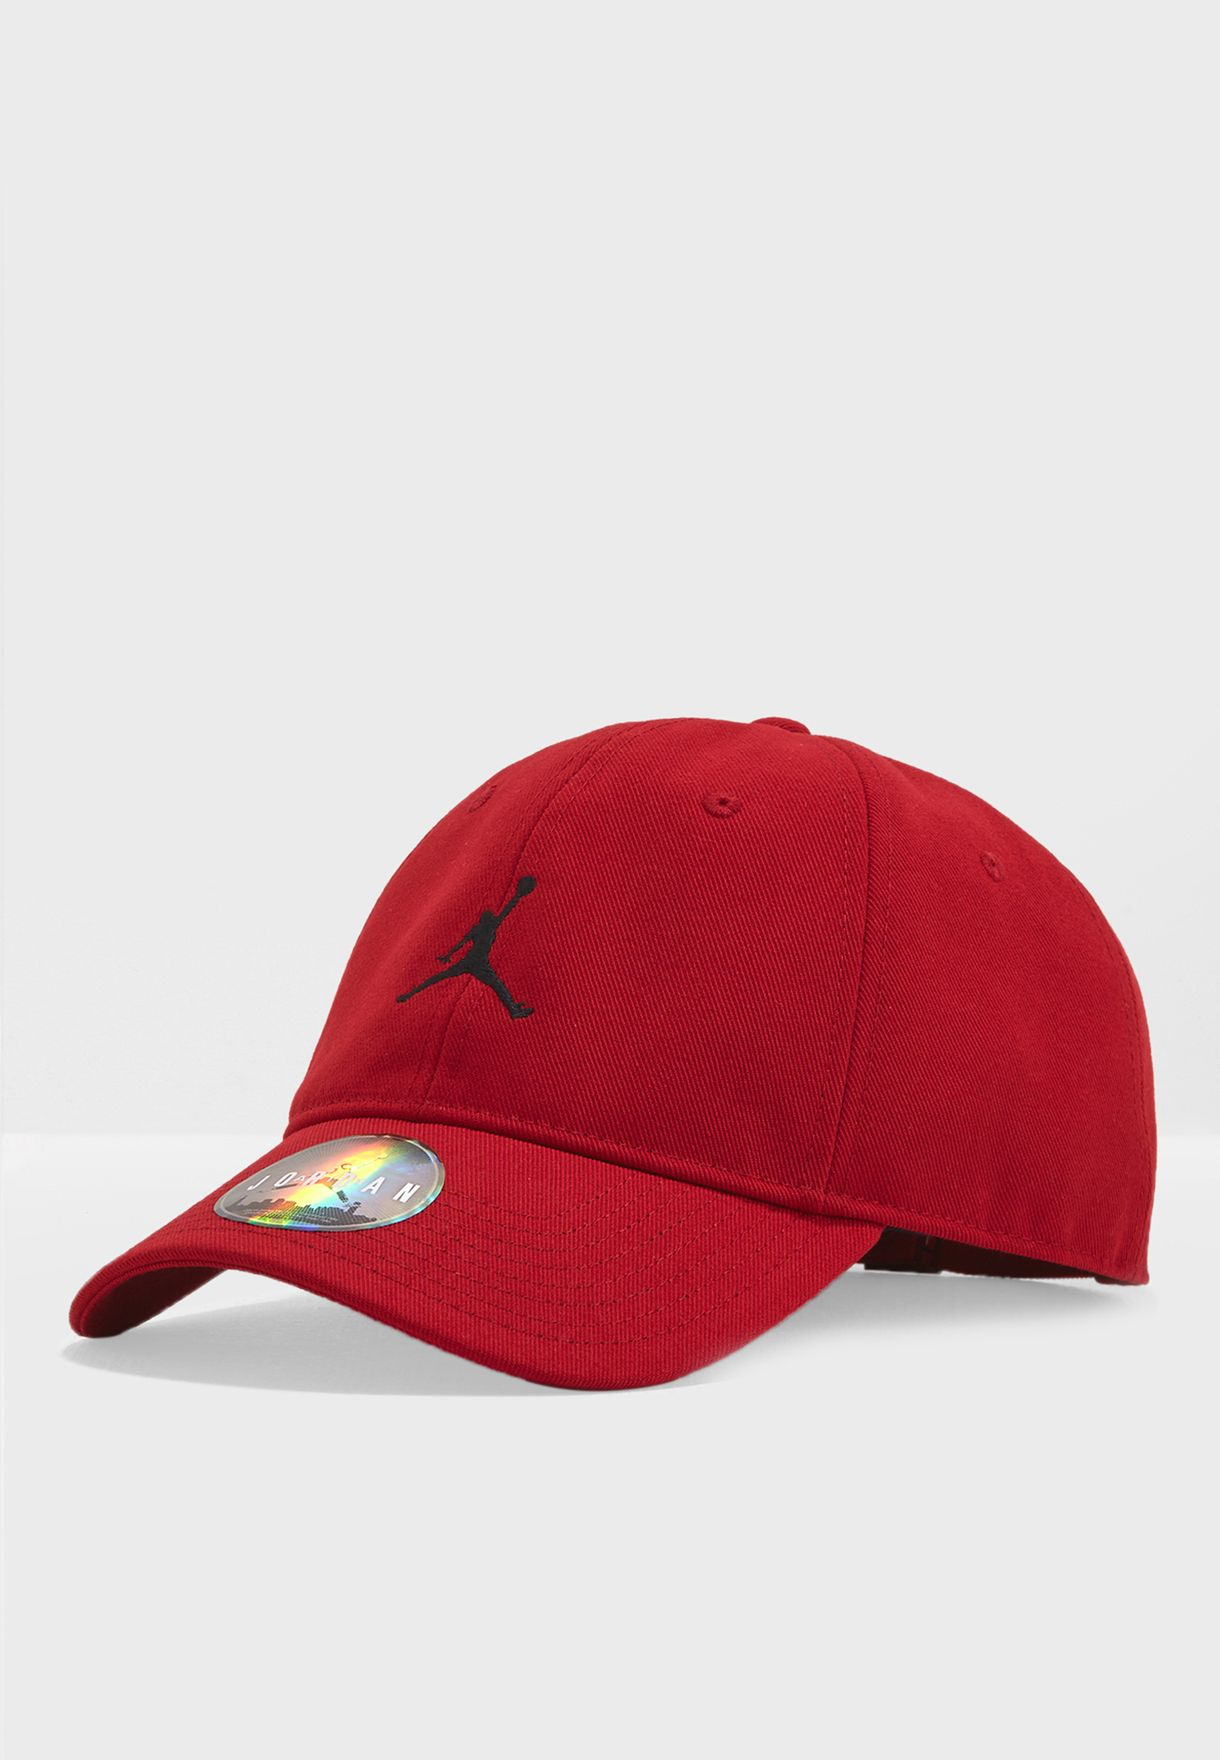 reputable site 22198 296fe Jordan Floppy H86 Cap